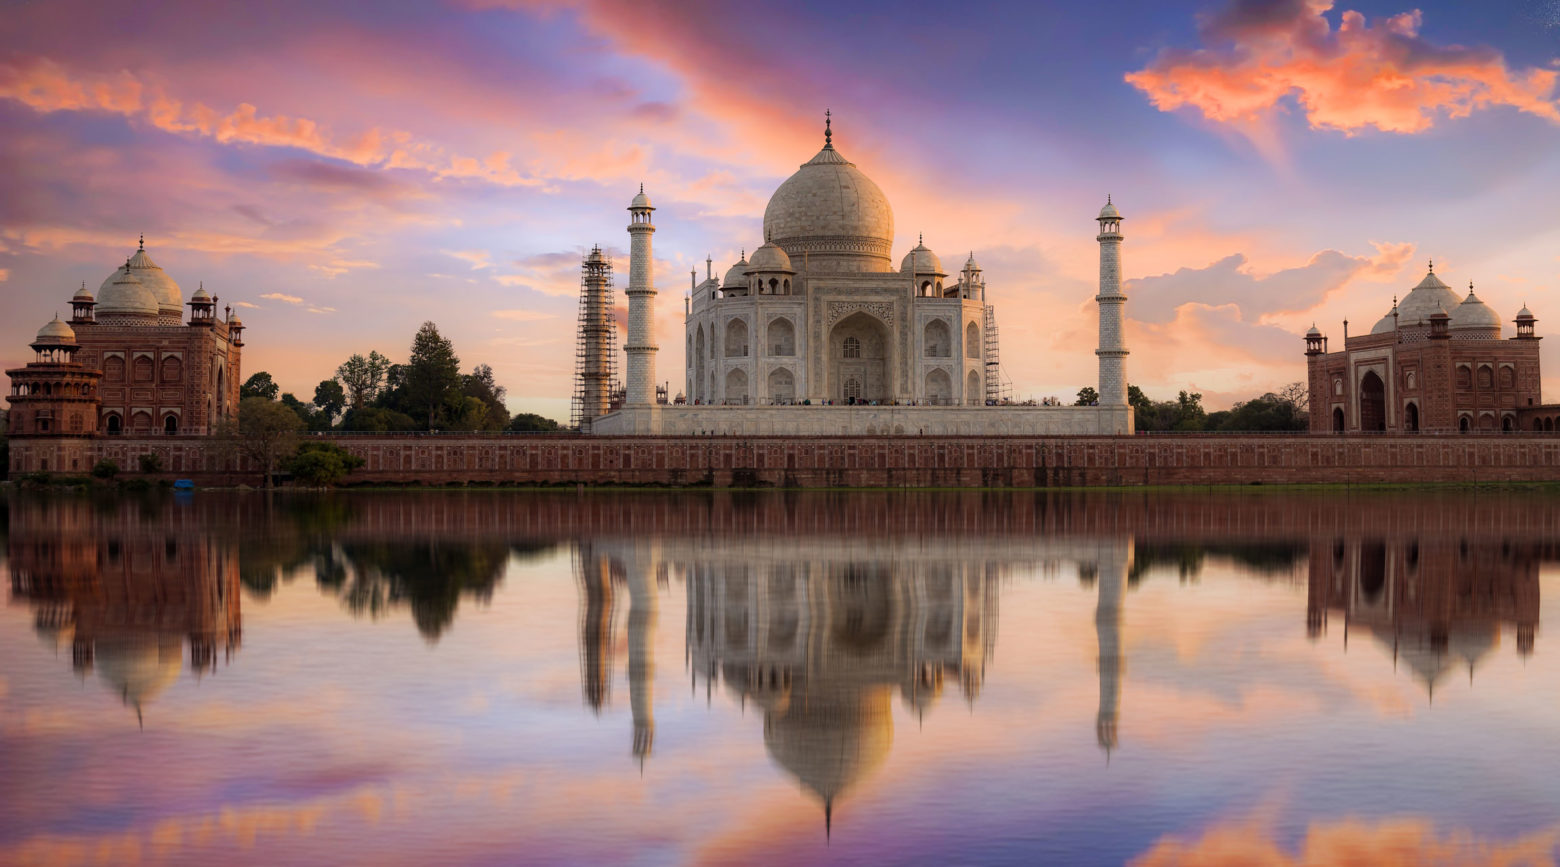 Website-Blog-Iconic-Life-Uniworld-Taj-Mahal-Shutterstock-Credit-Roop_Dey